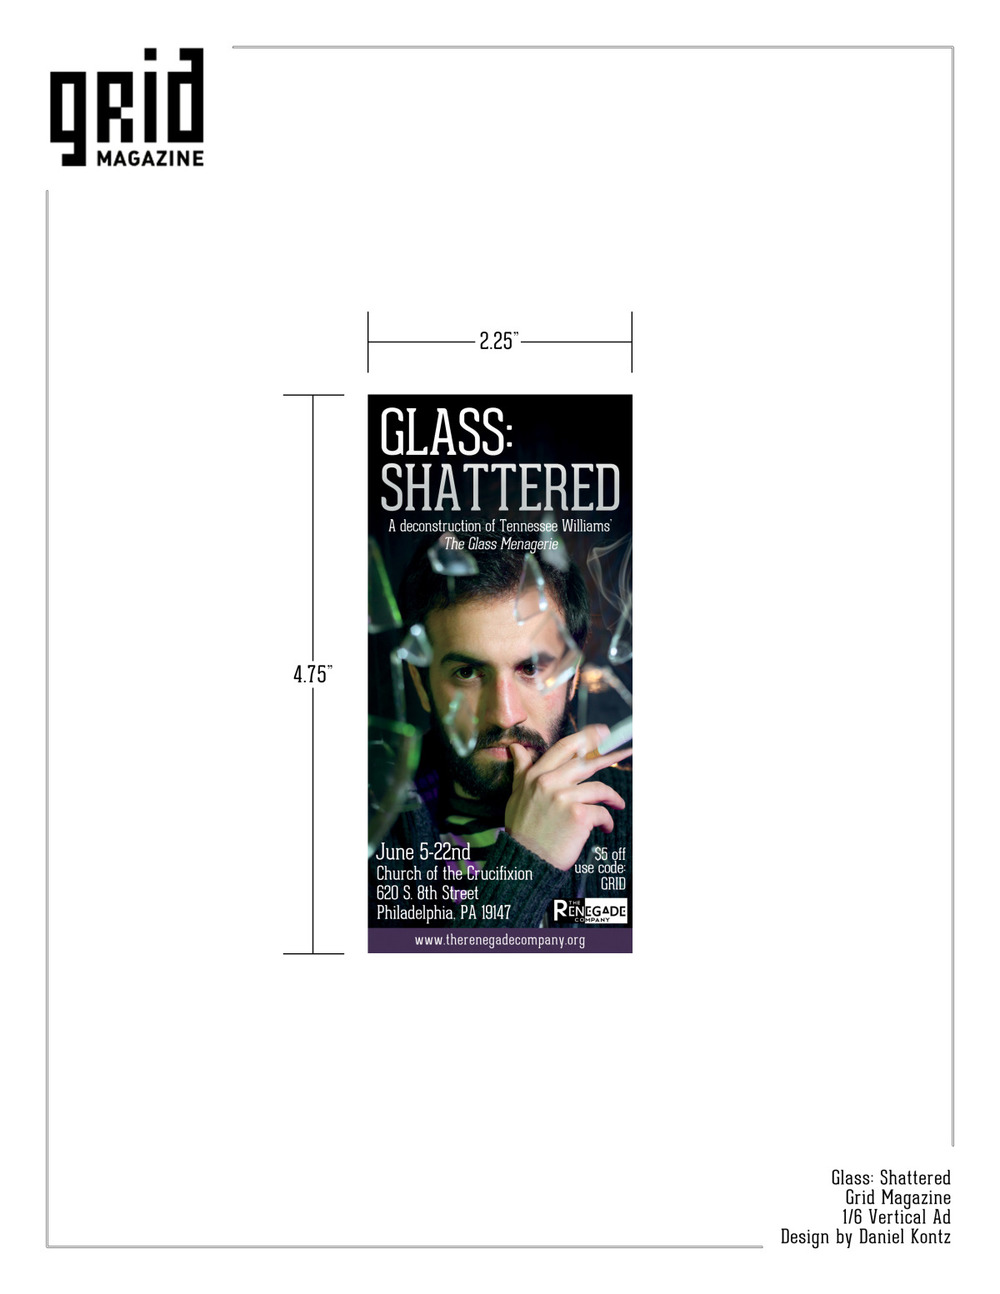 Glass: Shattered Grid Magazine Ad